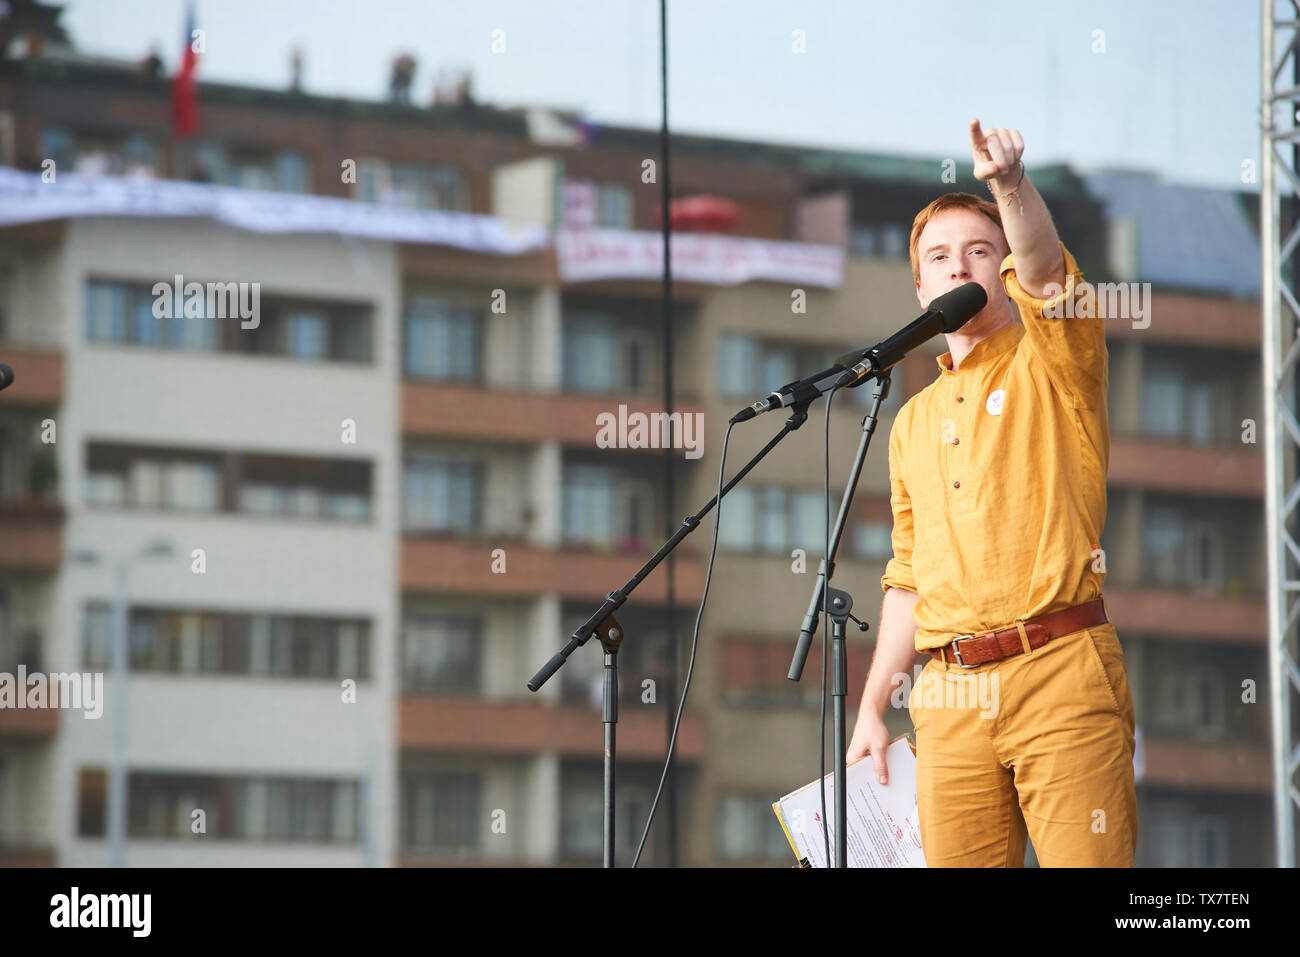 Prague/ Czech Republic - June 23 2019: Mikulas Minar - activist and leader speaks to protesters. Crowd of people protests against Prime Minister Babis - Stock Image